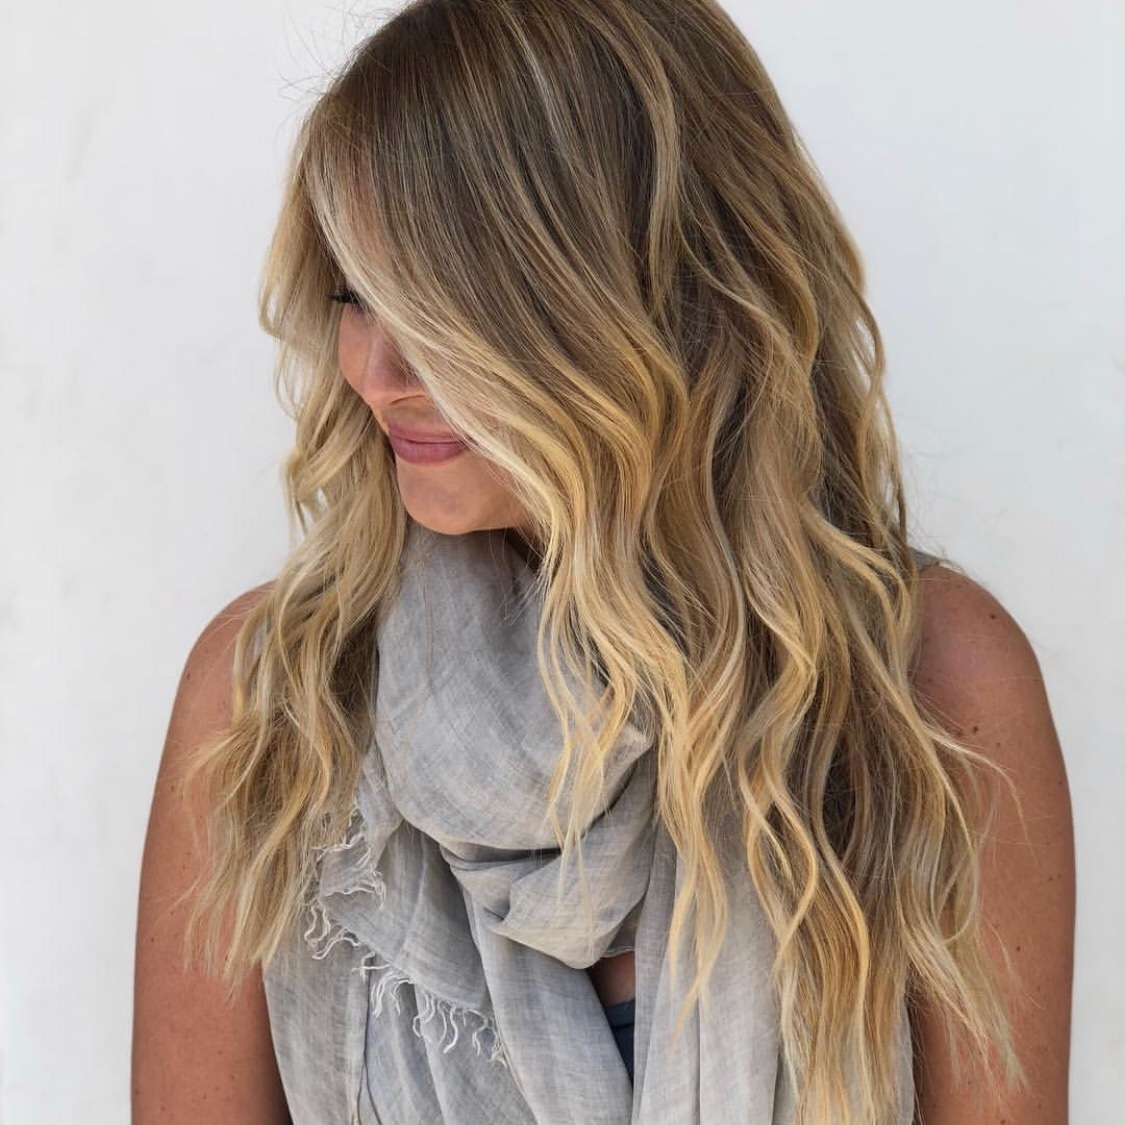 haircut & style - View gallery